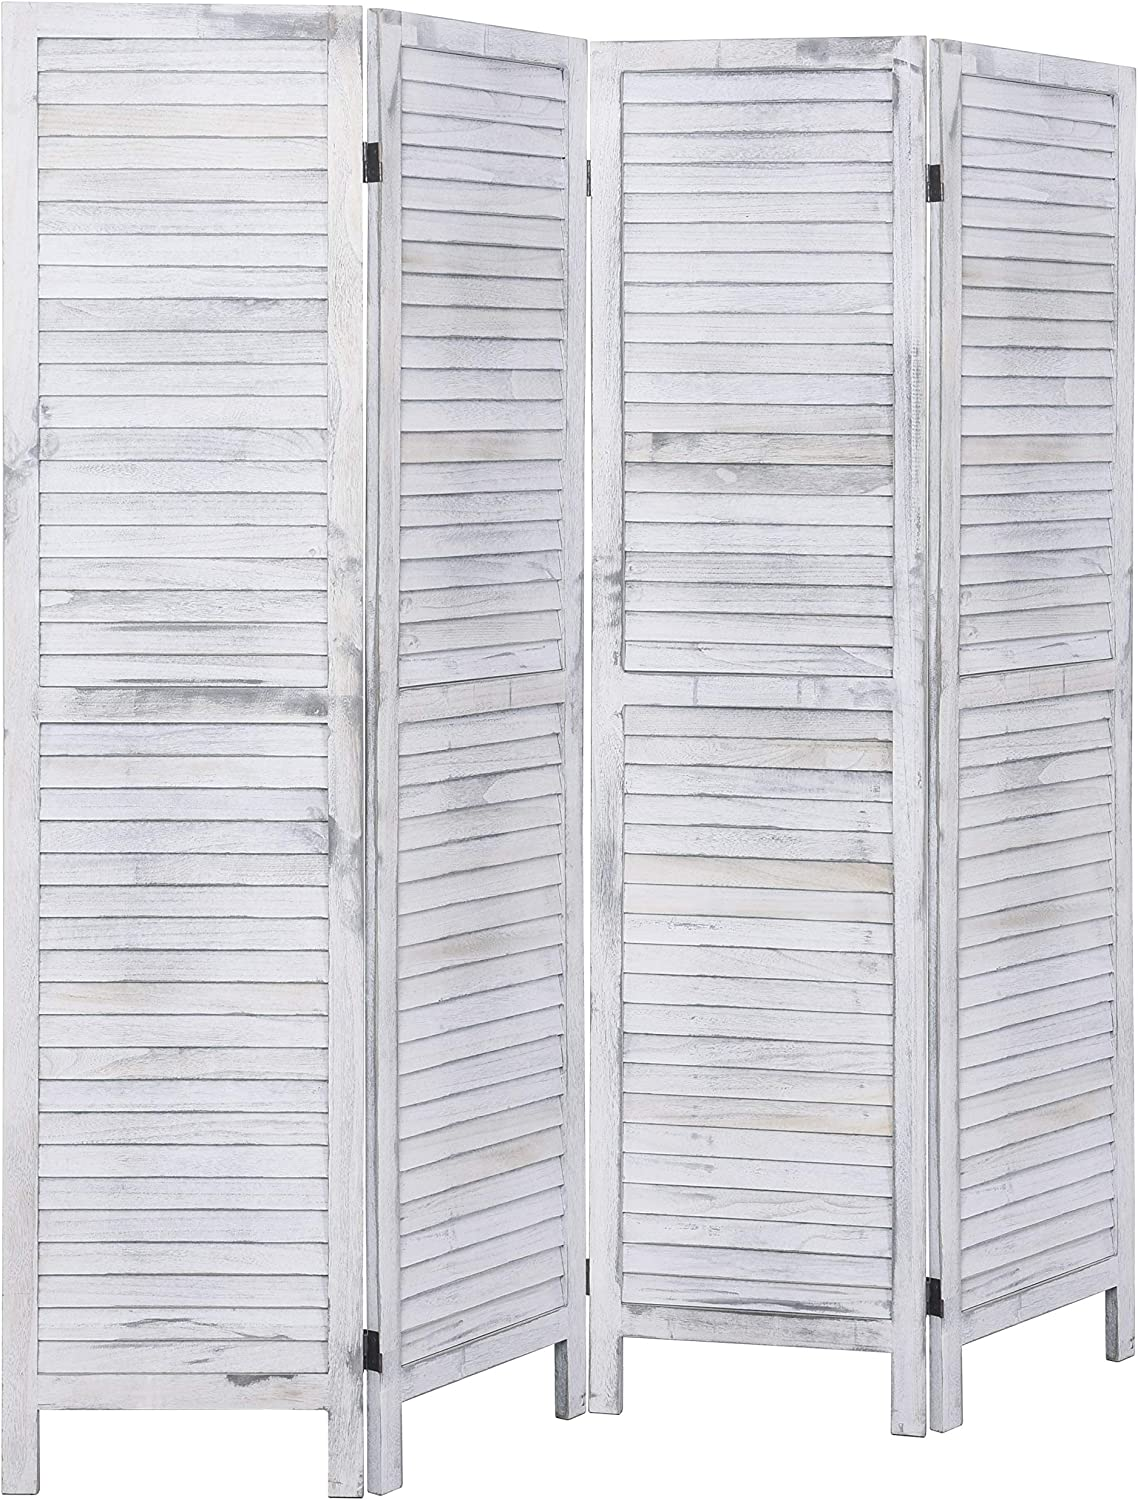 Rose Home Fashion 4 Panel 5.6 Ft Tall Wood Room Divider, Wood Folding Room Divider Screens, Panel Divider&Room Dividers, Room Dividers and Folding Privacy Screens (4 Panel, Coconut)